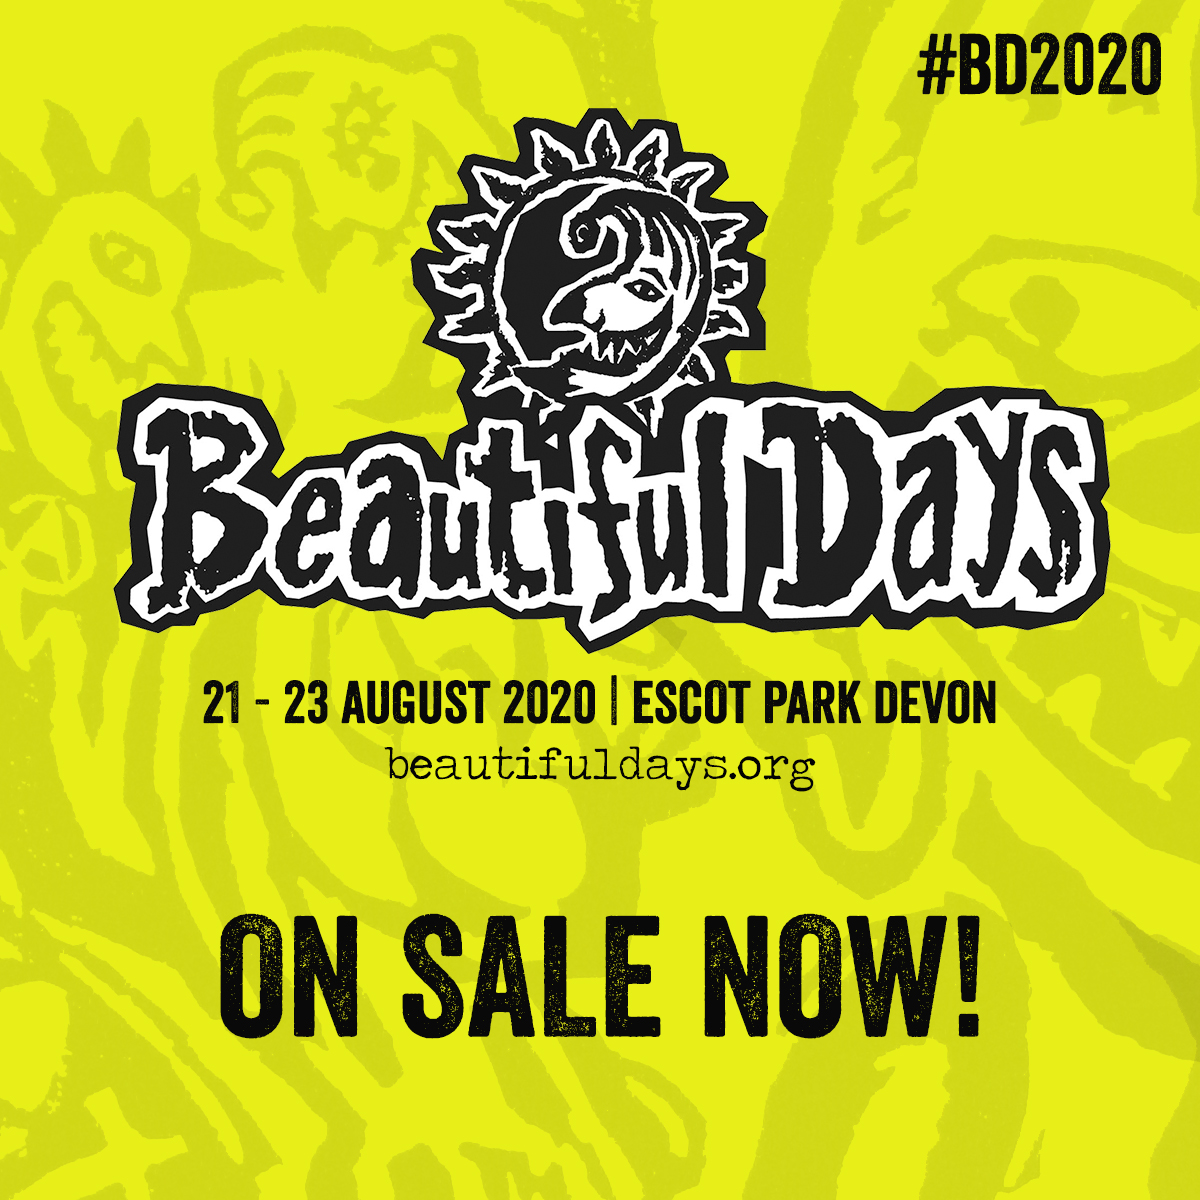 BD2020 is on sale now